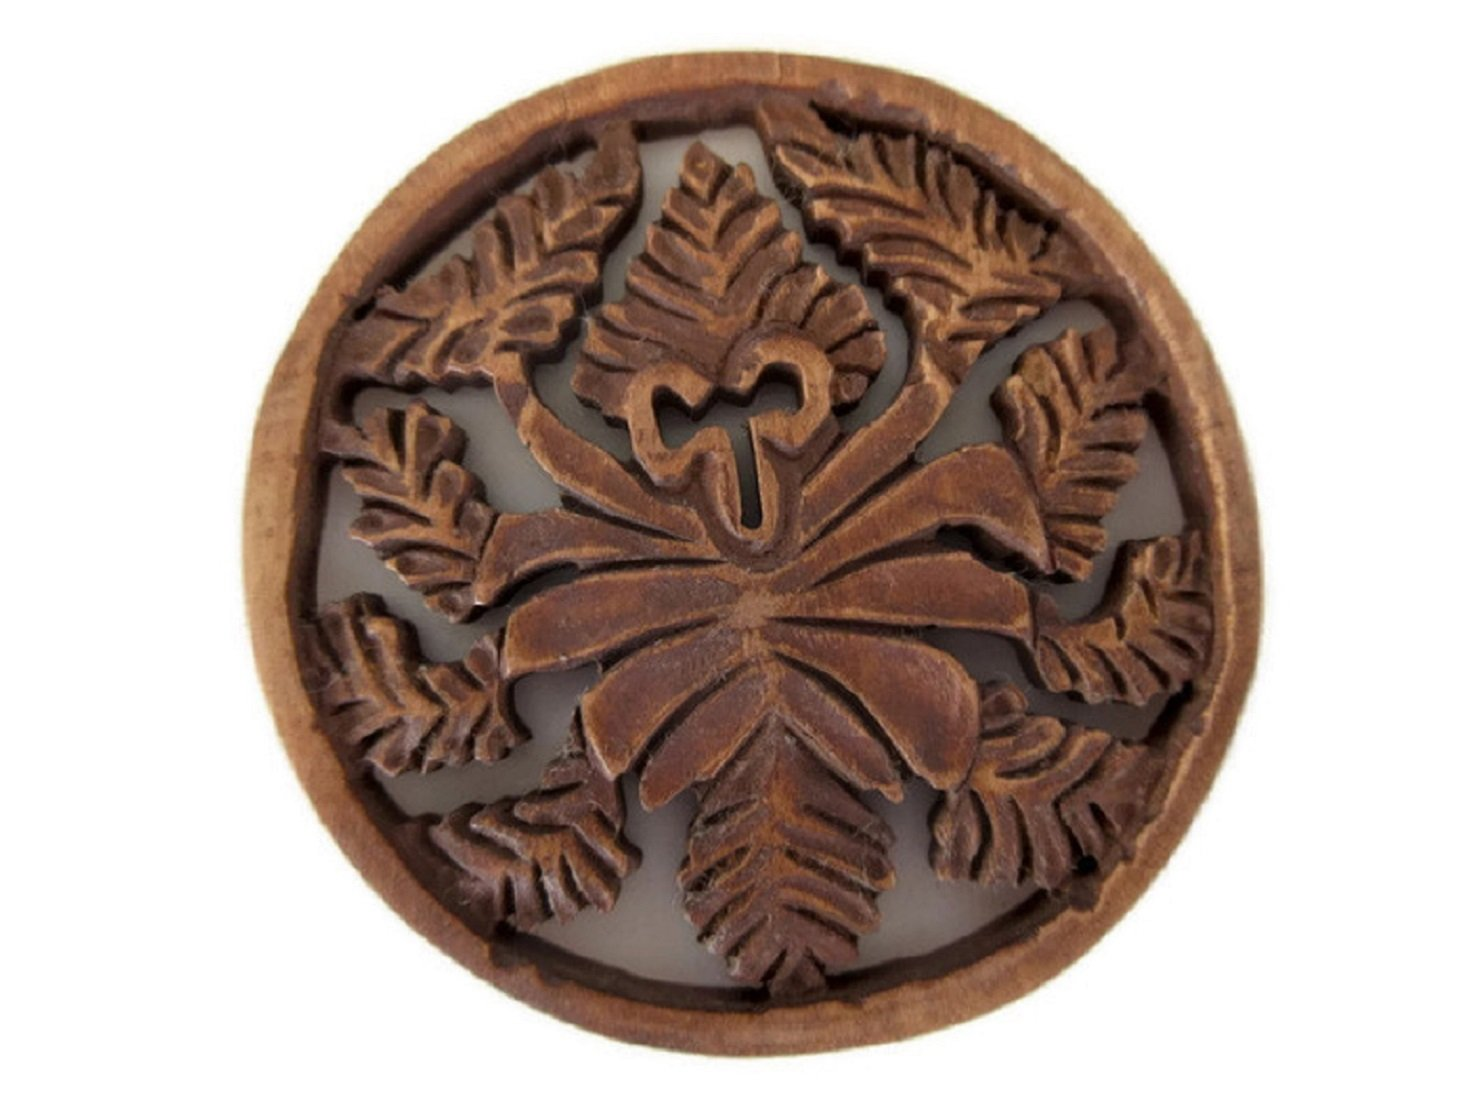 Hand Carved Wooden Pendant, Handmade Carved Round Fiigree Pendant, Wood Art And Craft Framing Supplies Jewelry, GDS1046/8 (2 Pieces)